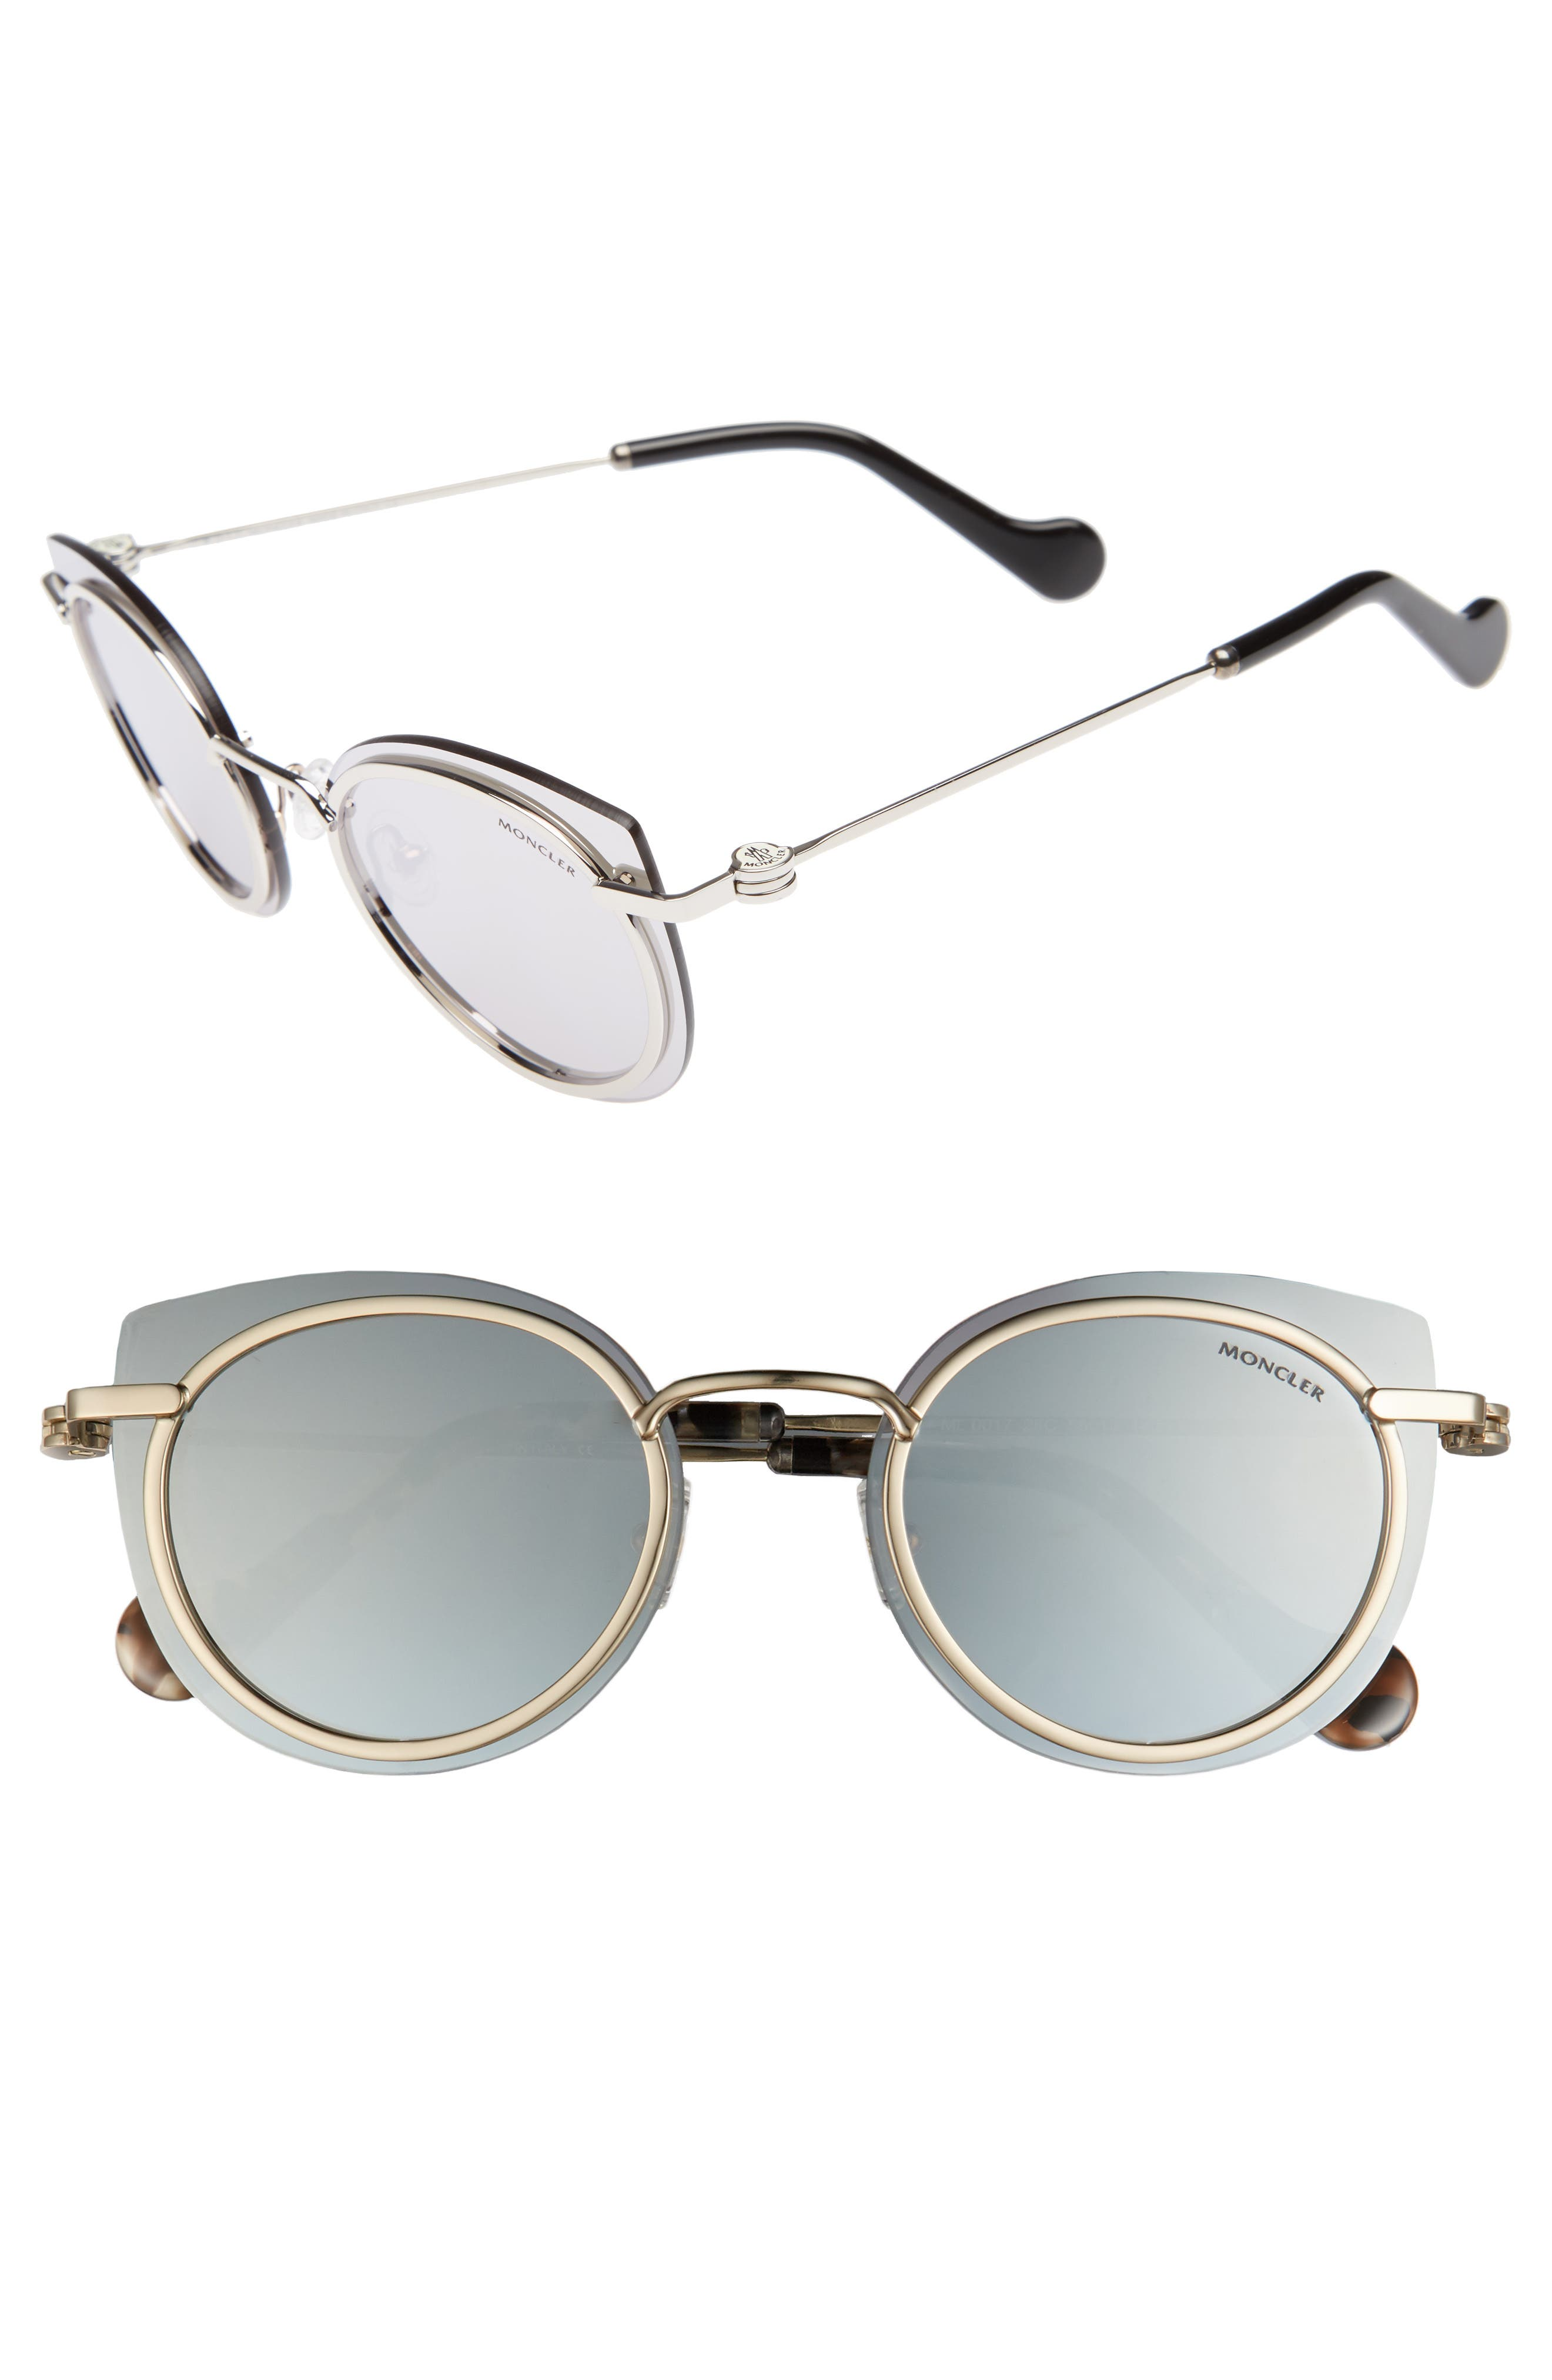 56mm Mirrored Cat Eye Sunglasses,                         Main,                         color, 040